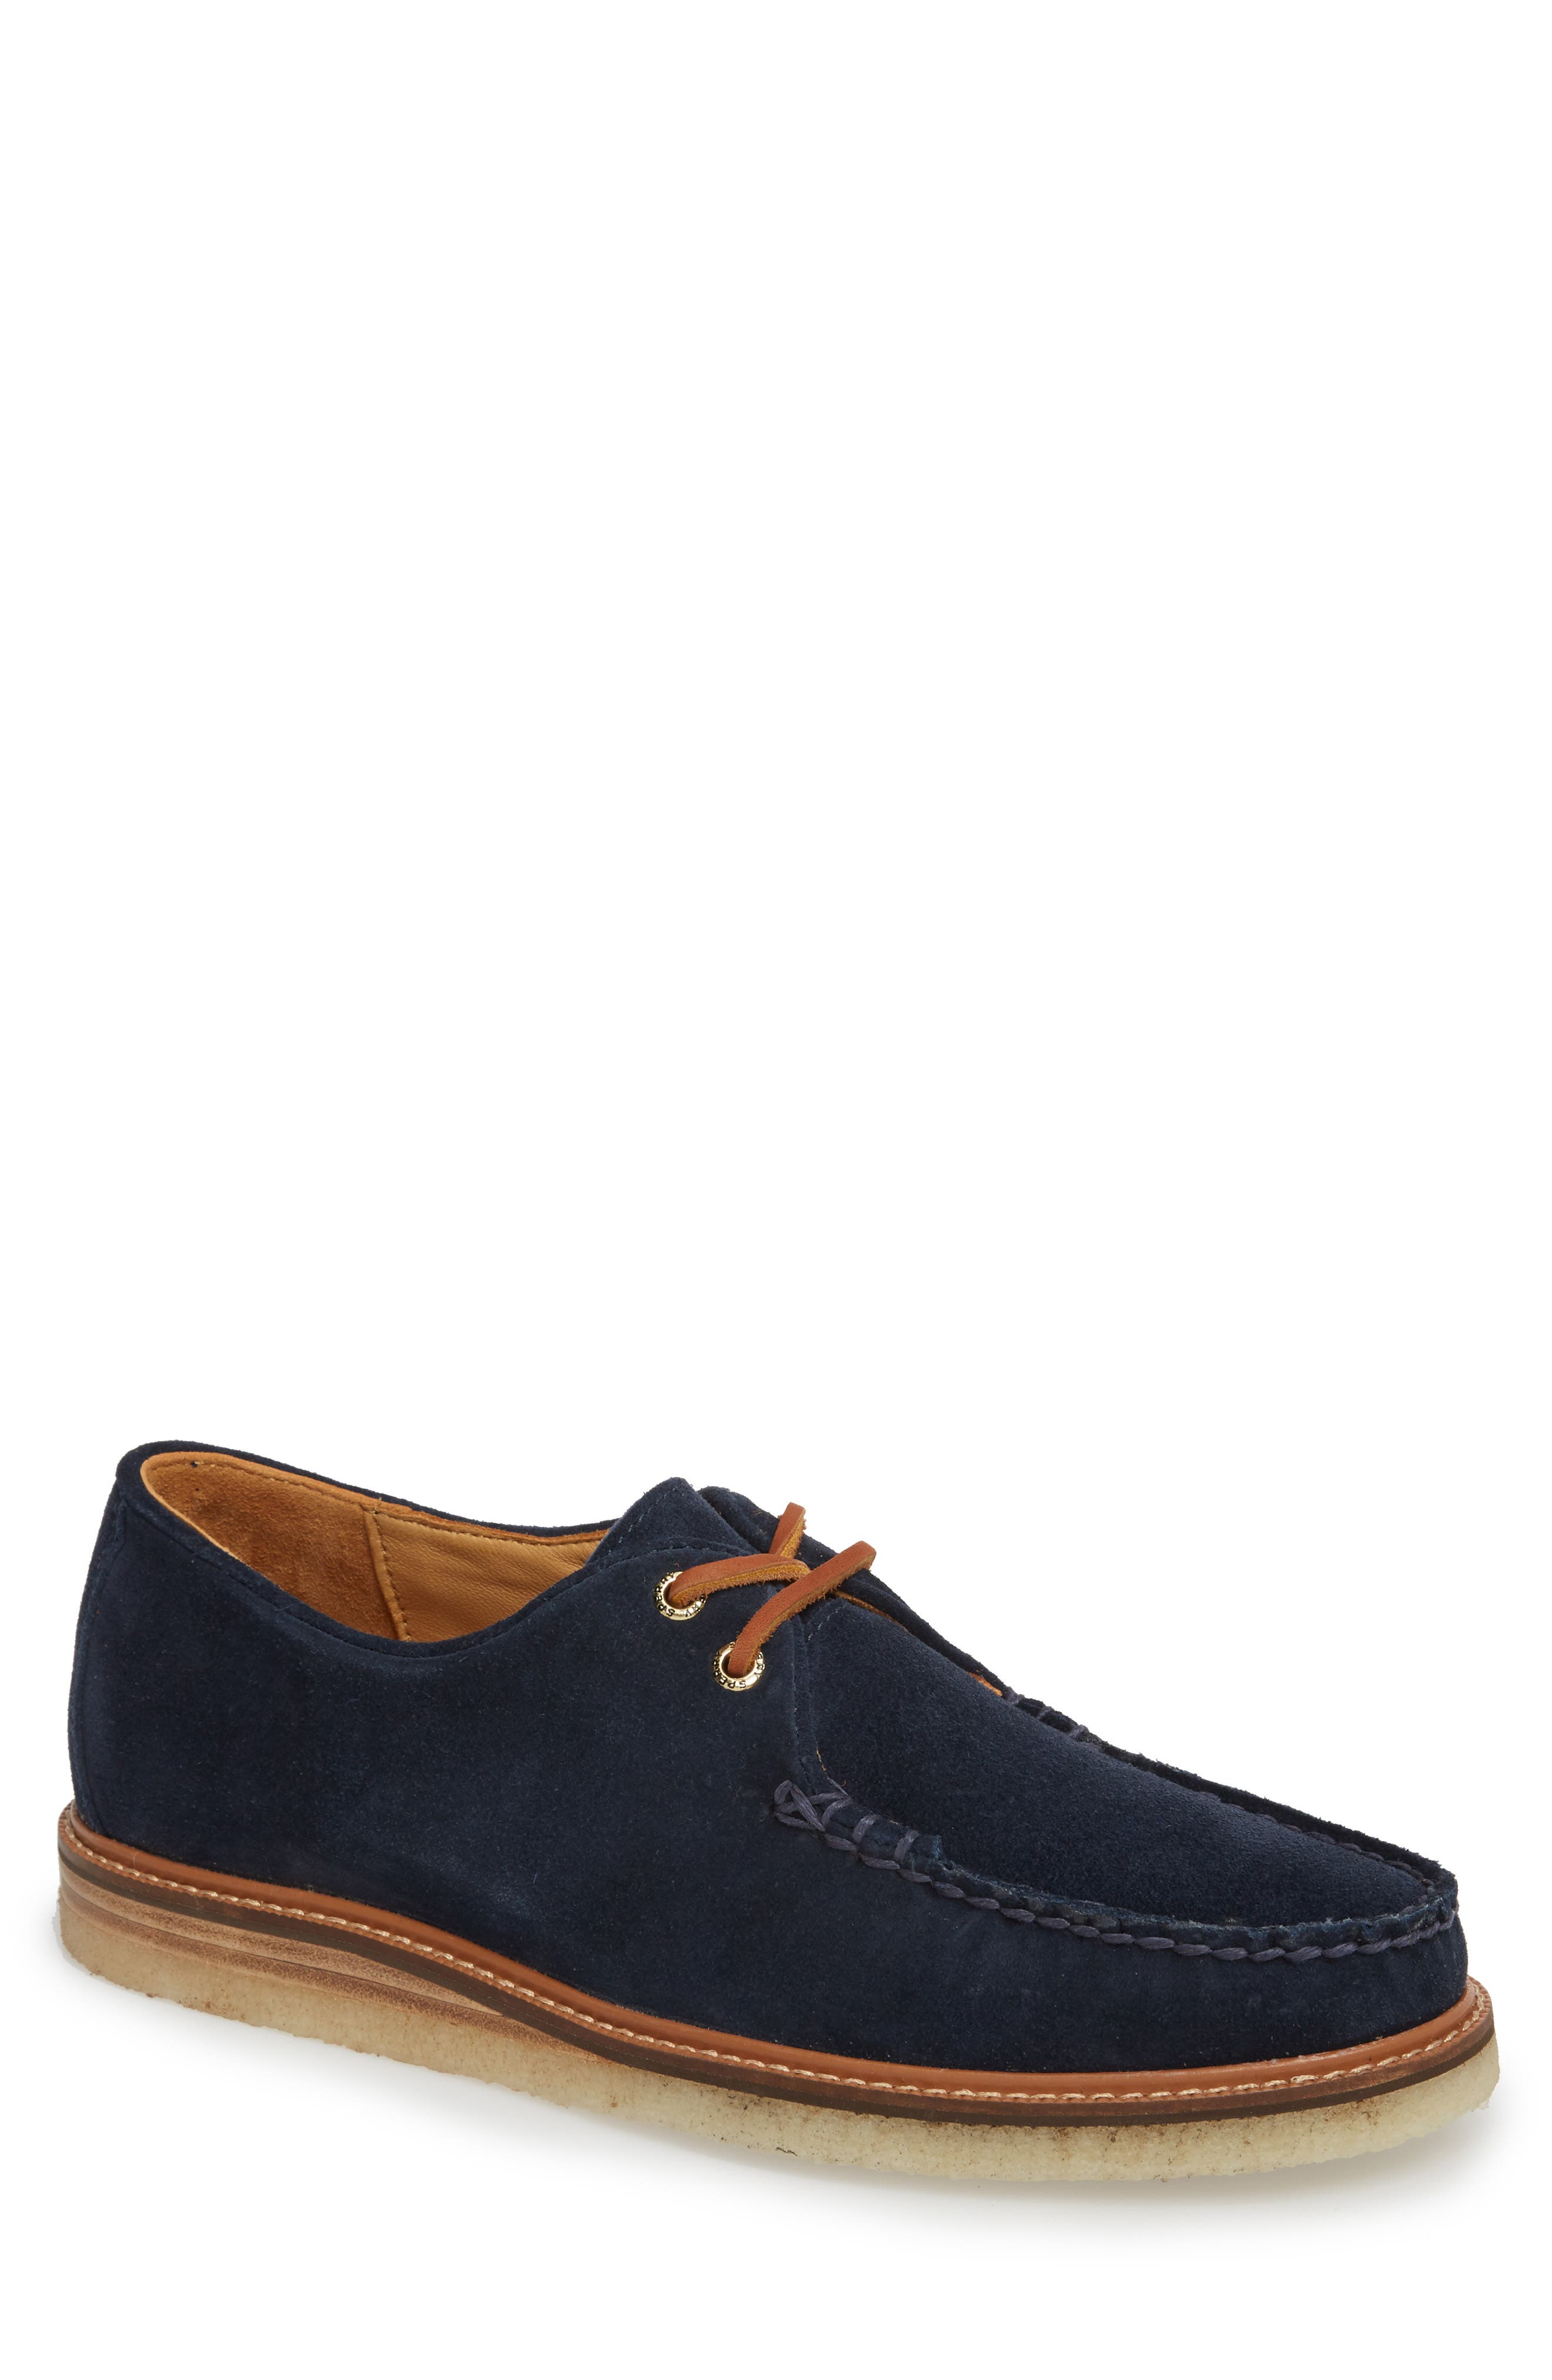 SPERRY Gold Cup Captain's Crepe Sole Oxford, Main, color, BLUE LEATHER/ SUEDE